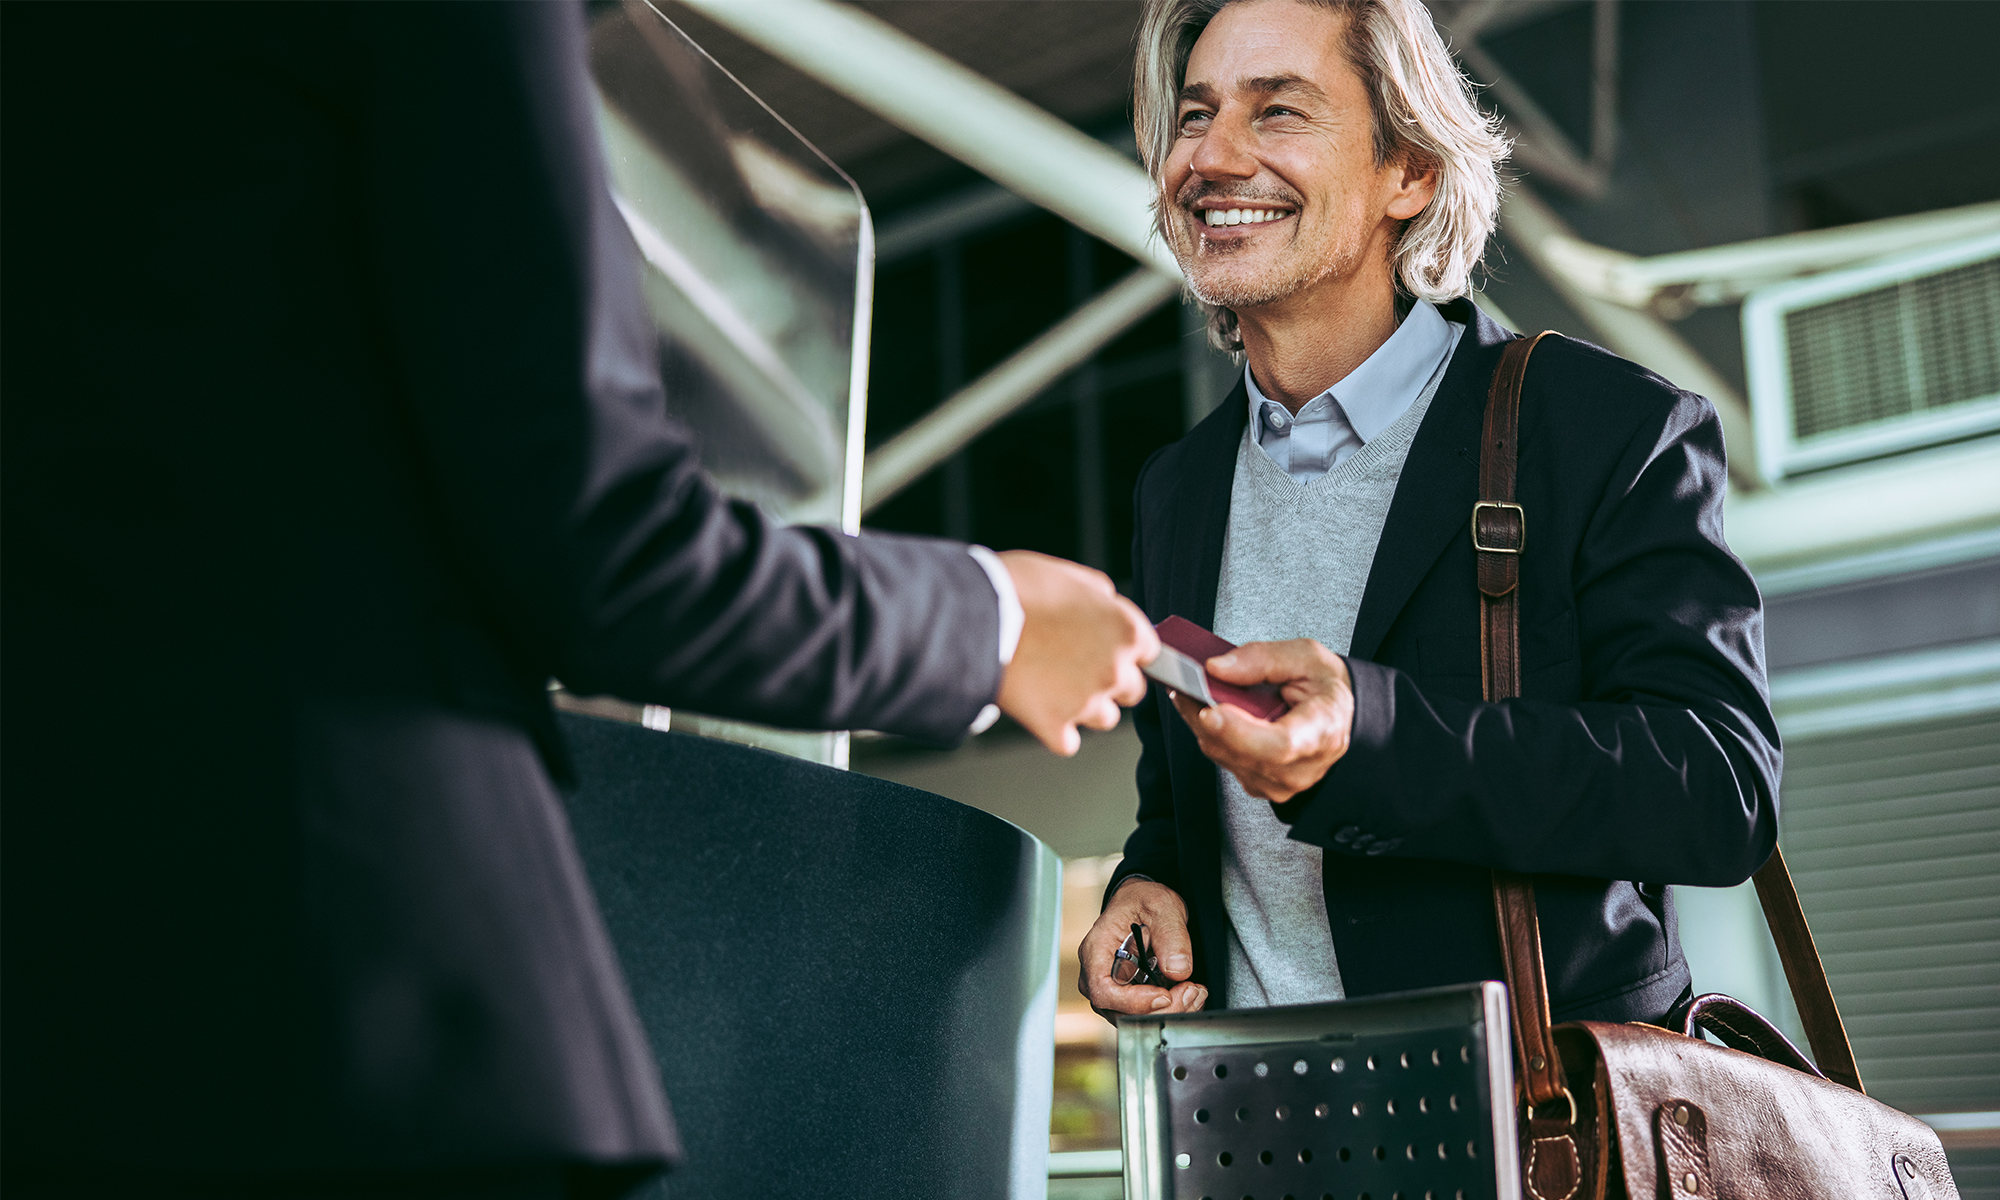 Perfecting Airline Customer Service on the Fly, Without Winging It